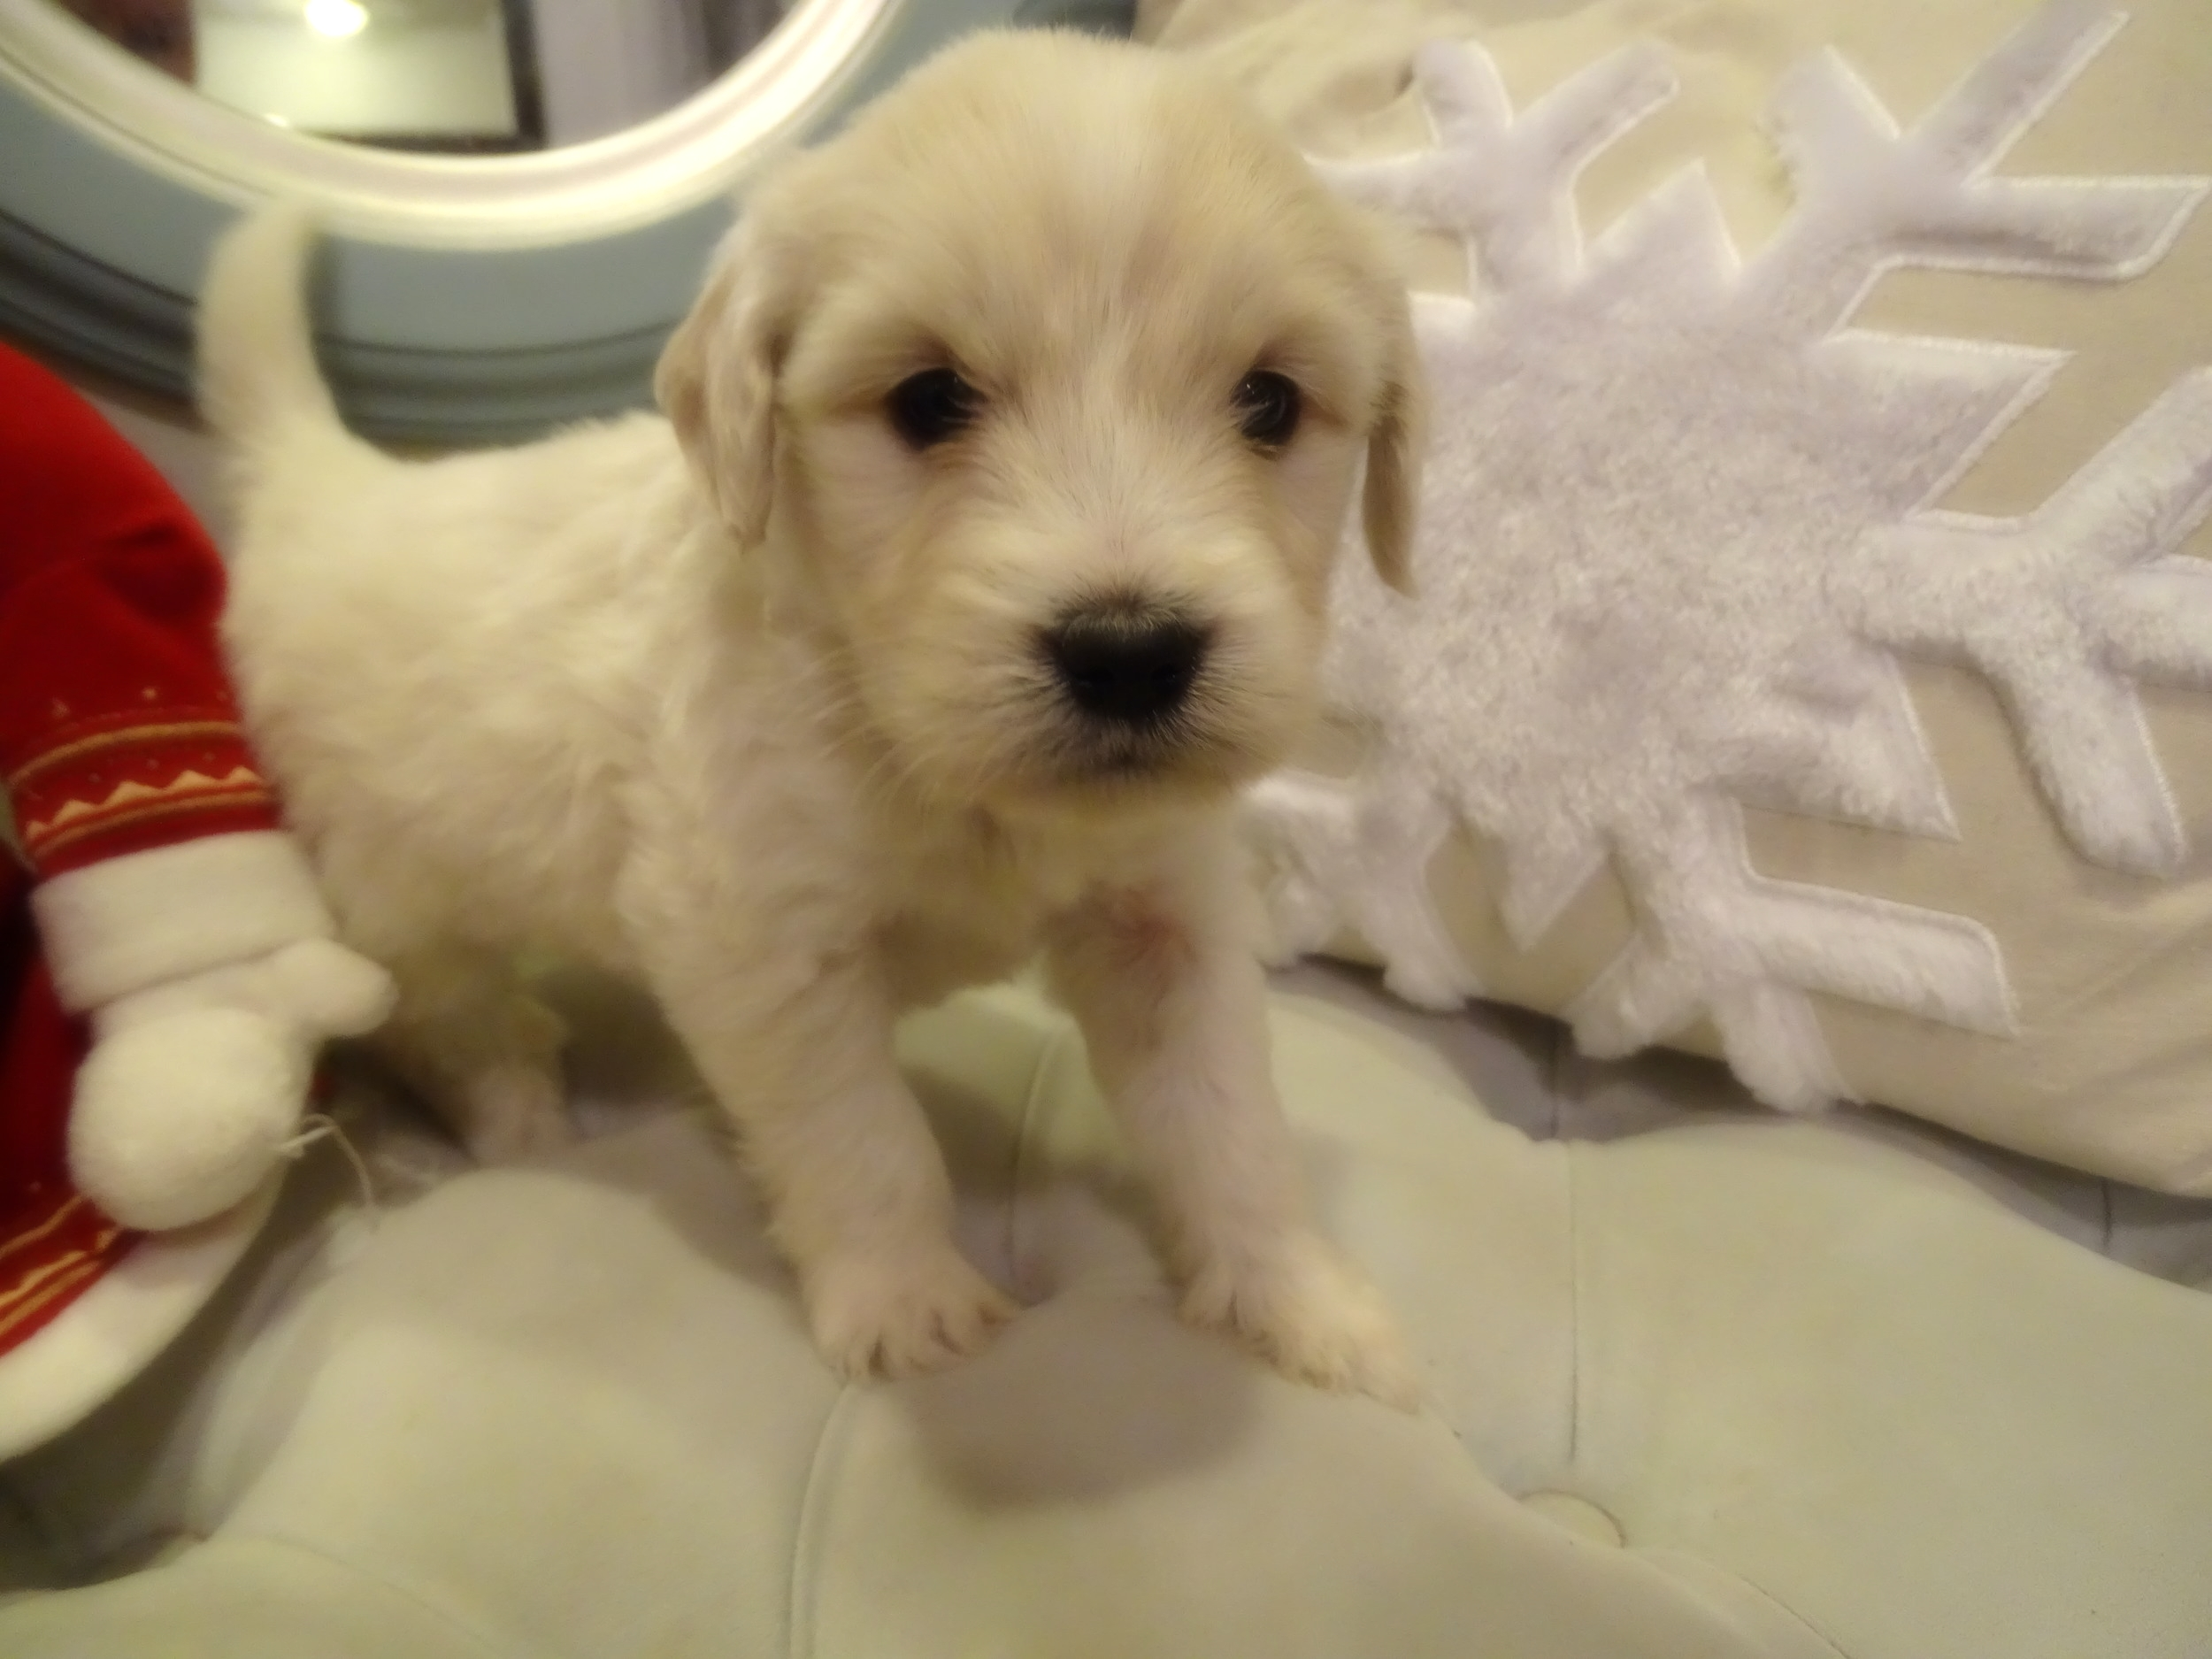 This is Scamp, 5 week-old cream male with a wavy non-shedding coat. He weighs 2 lbs 12 oz. He is charting 15 lbs. He scored an even 3/4 on his Volhard aptitude test which is perfect!